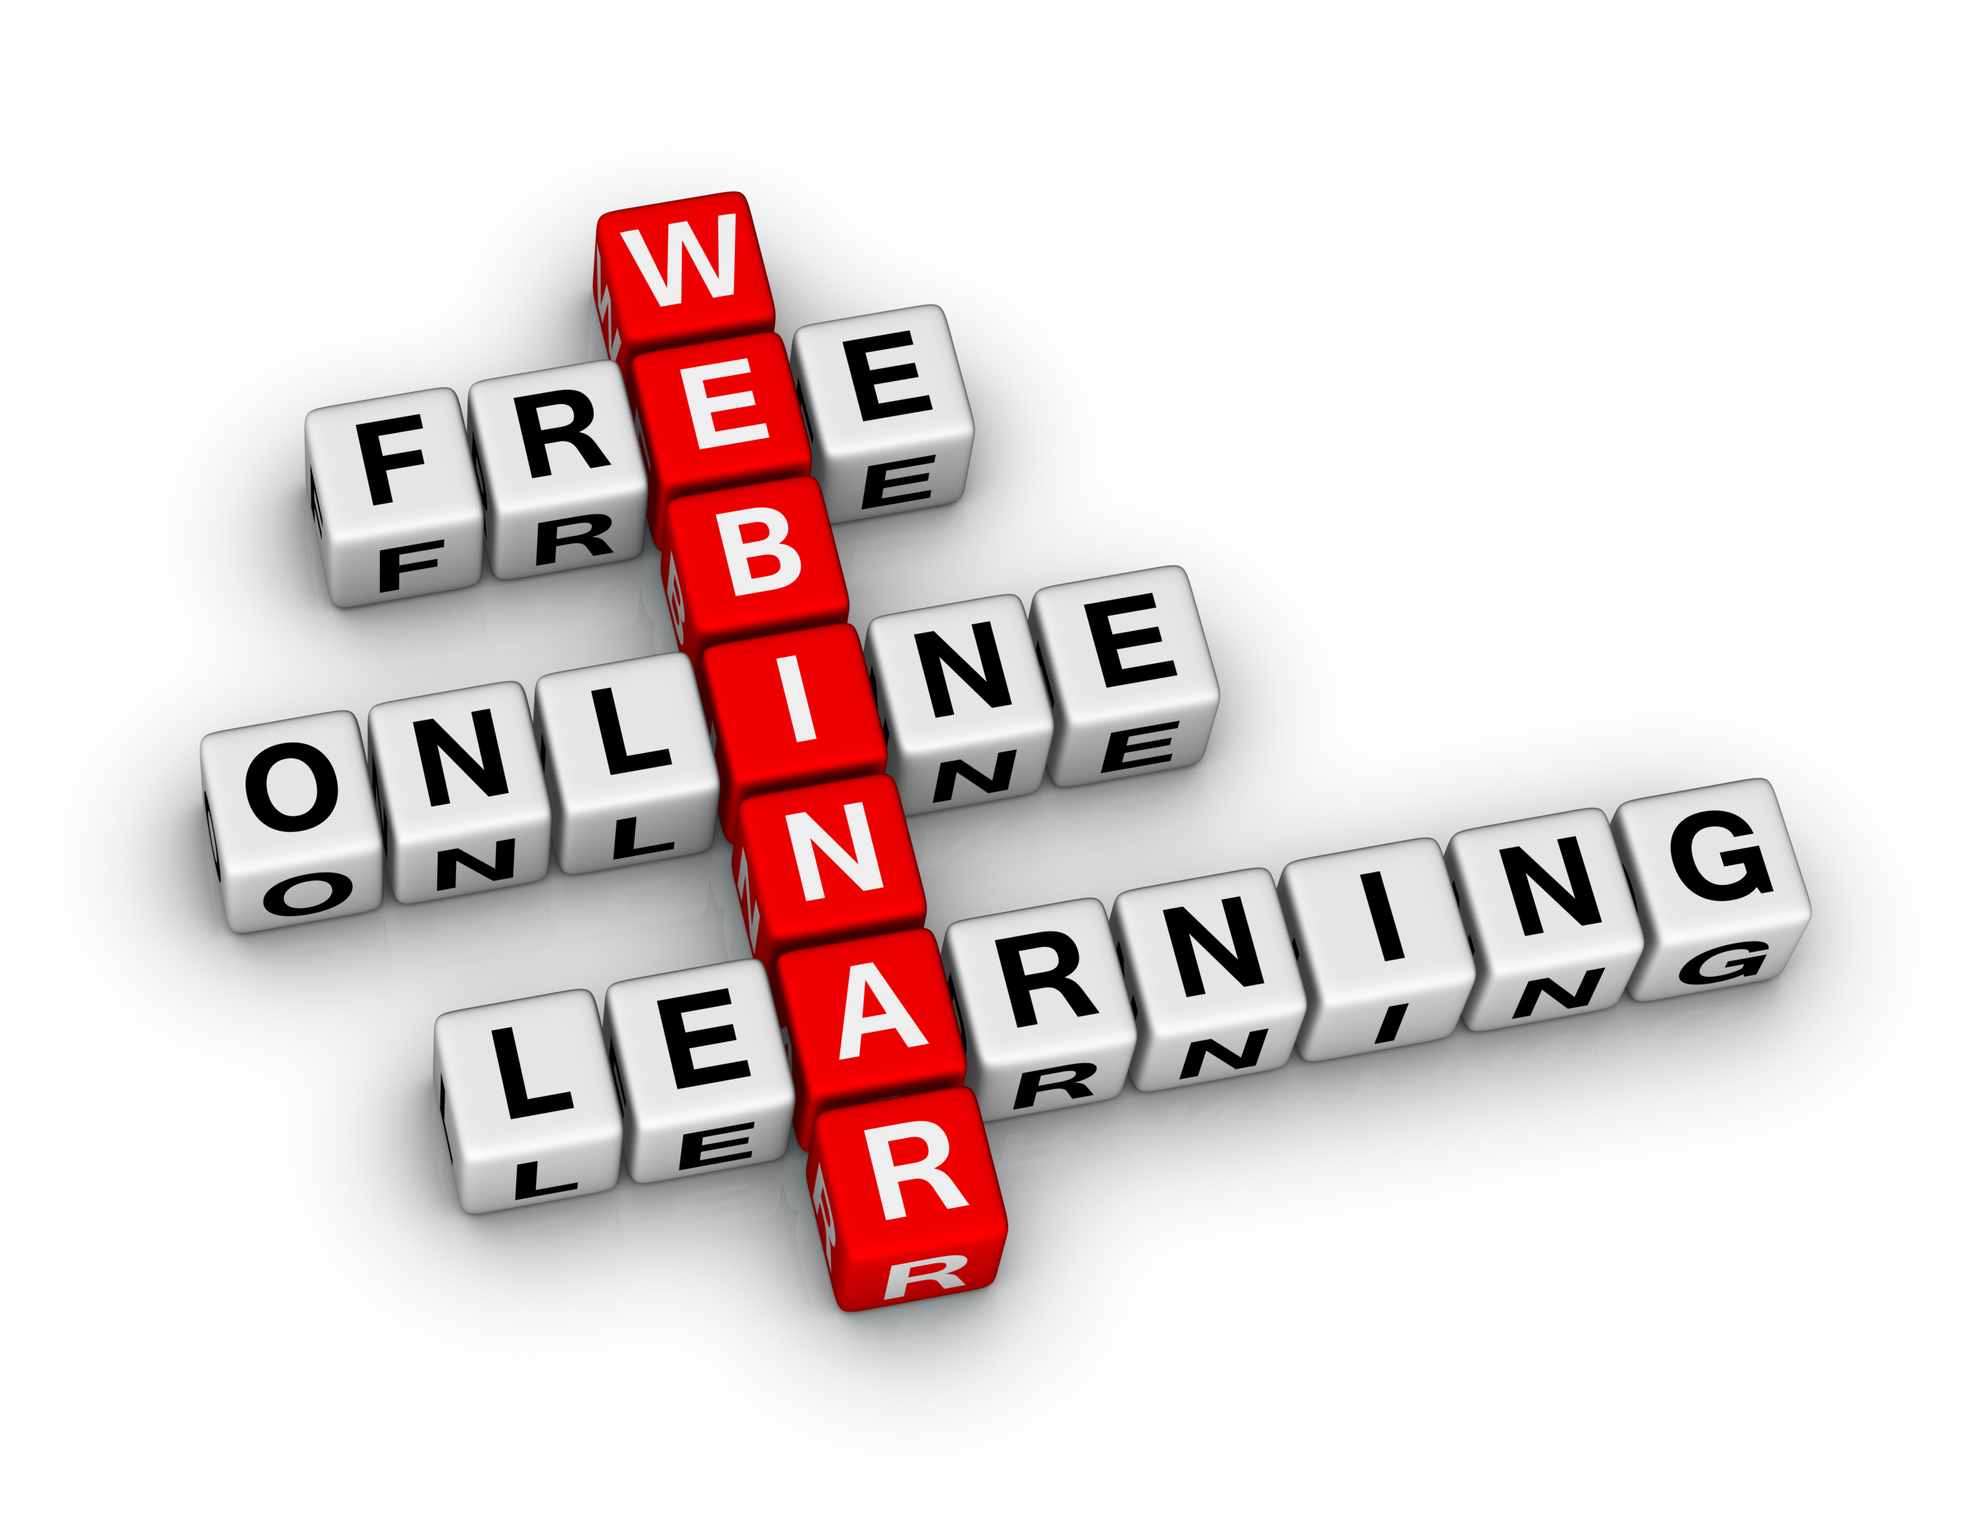 Online Learning Crowssword